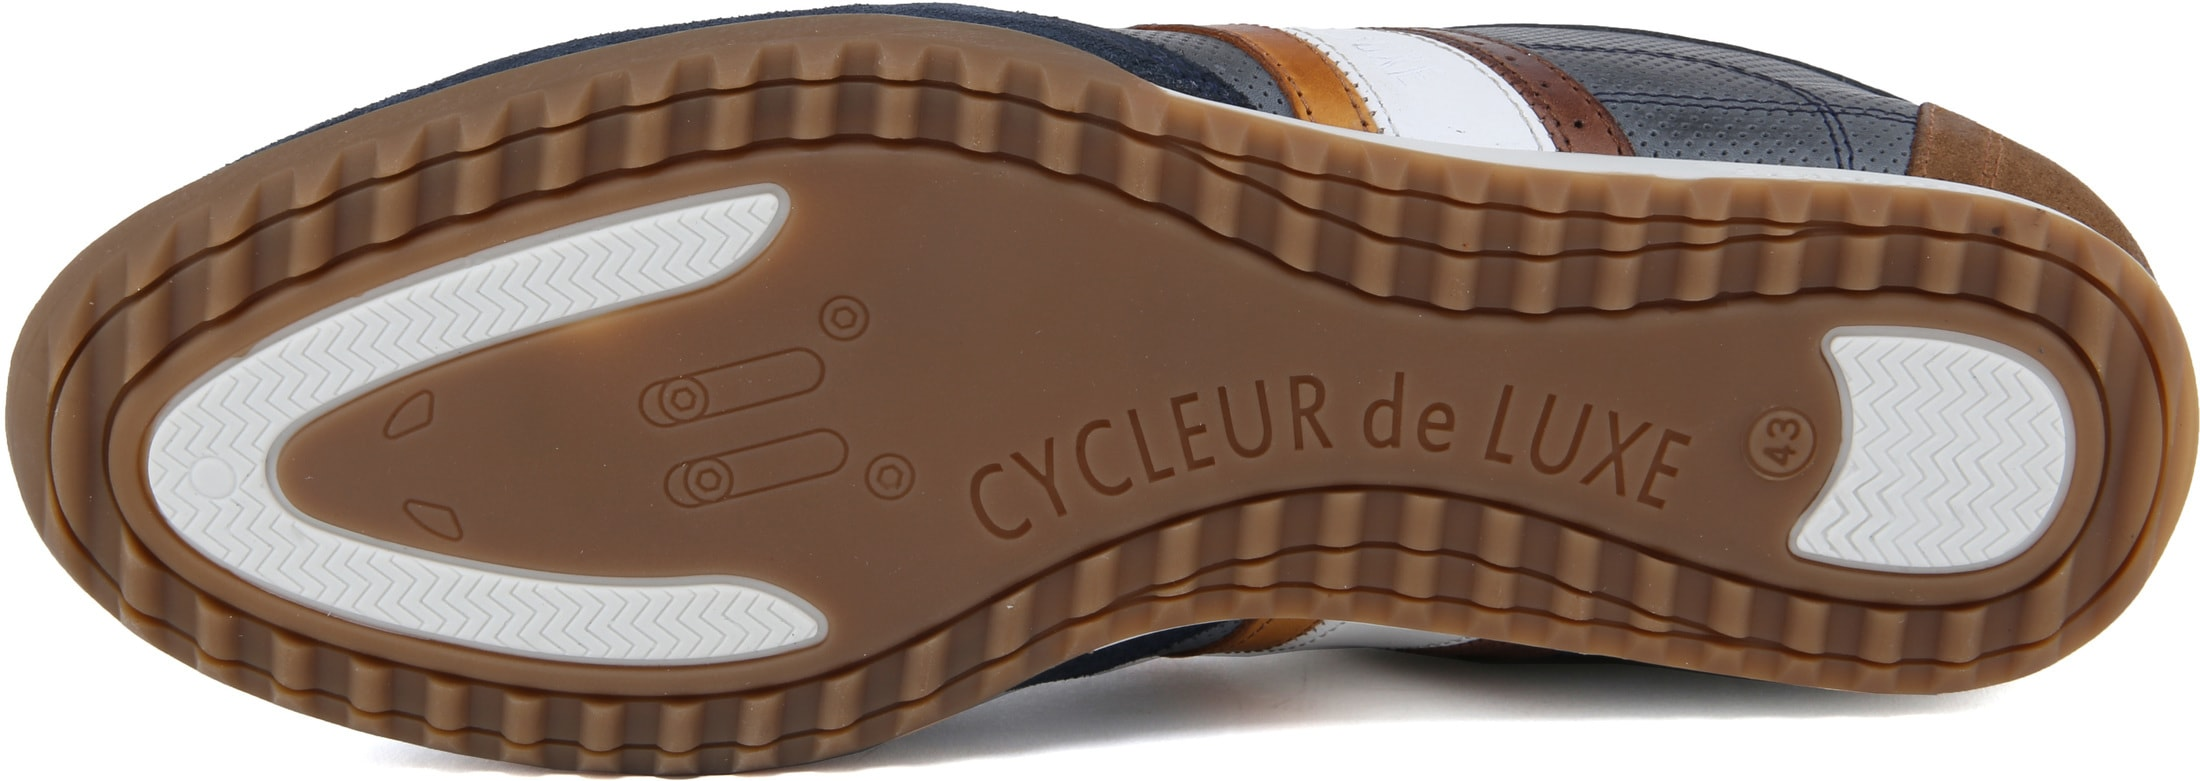 Cycleur de Luxe Sneaker Crash Navy foto 3